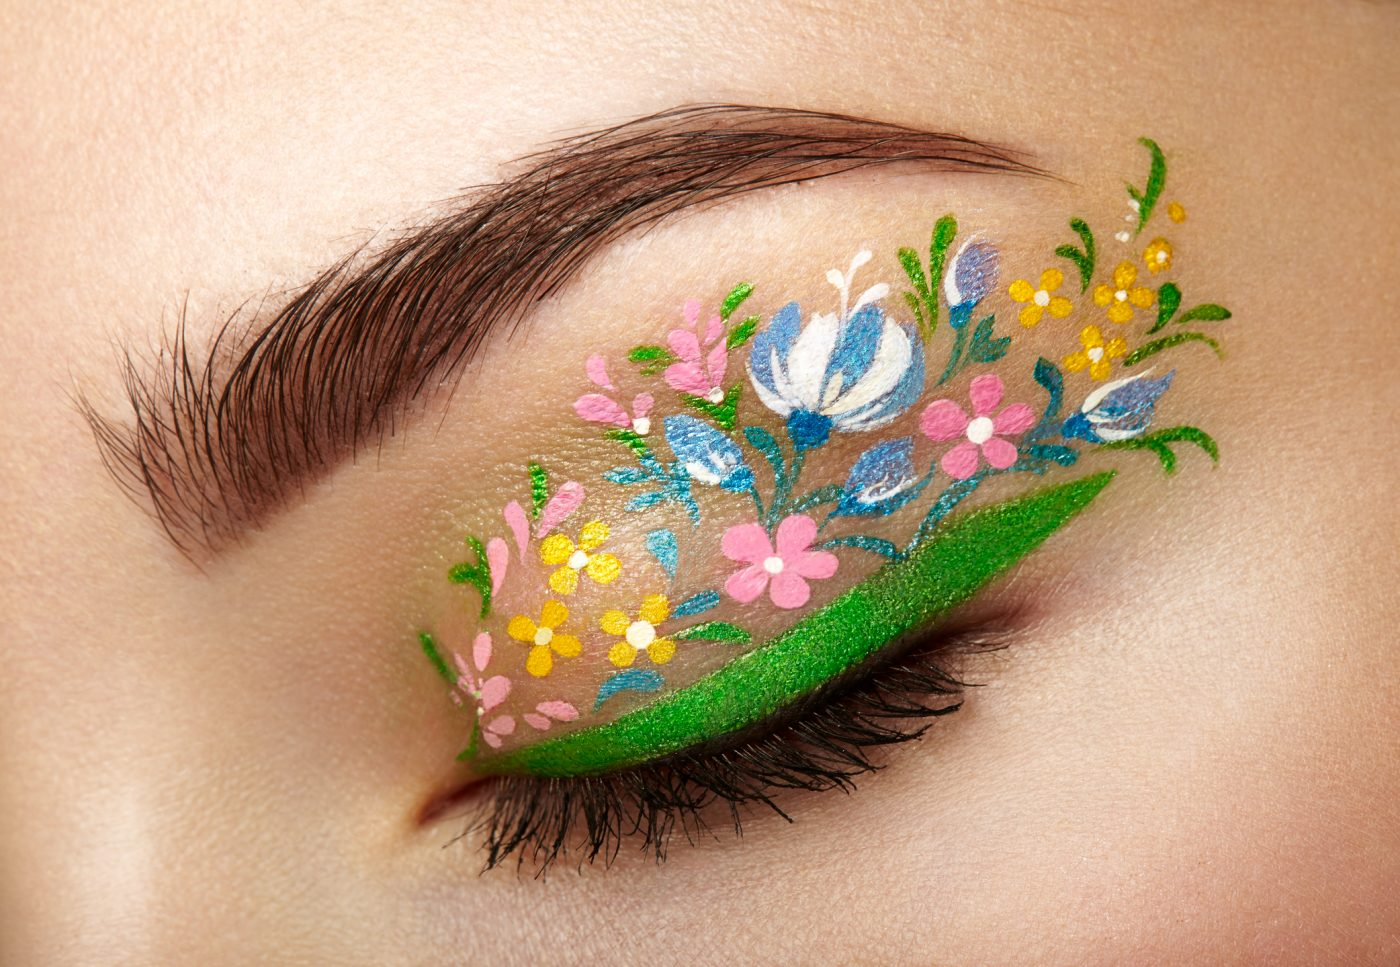 Floral Eyeliner is the Newest Makeup Trend You'll Be Obsessed With